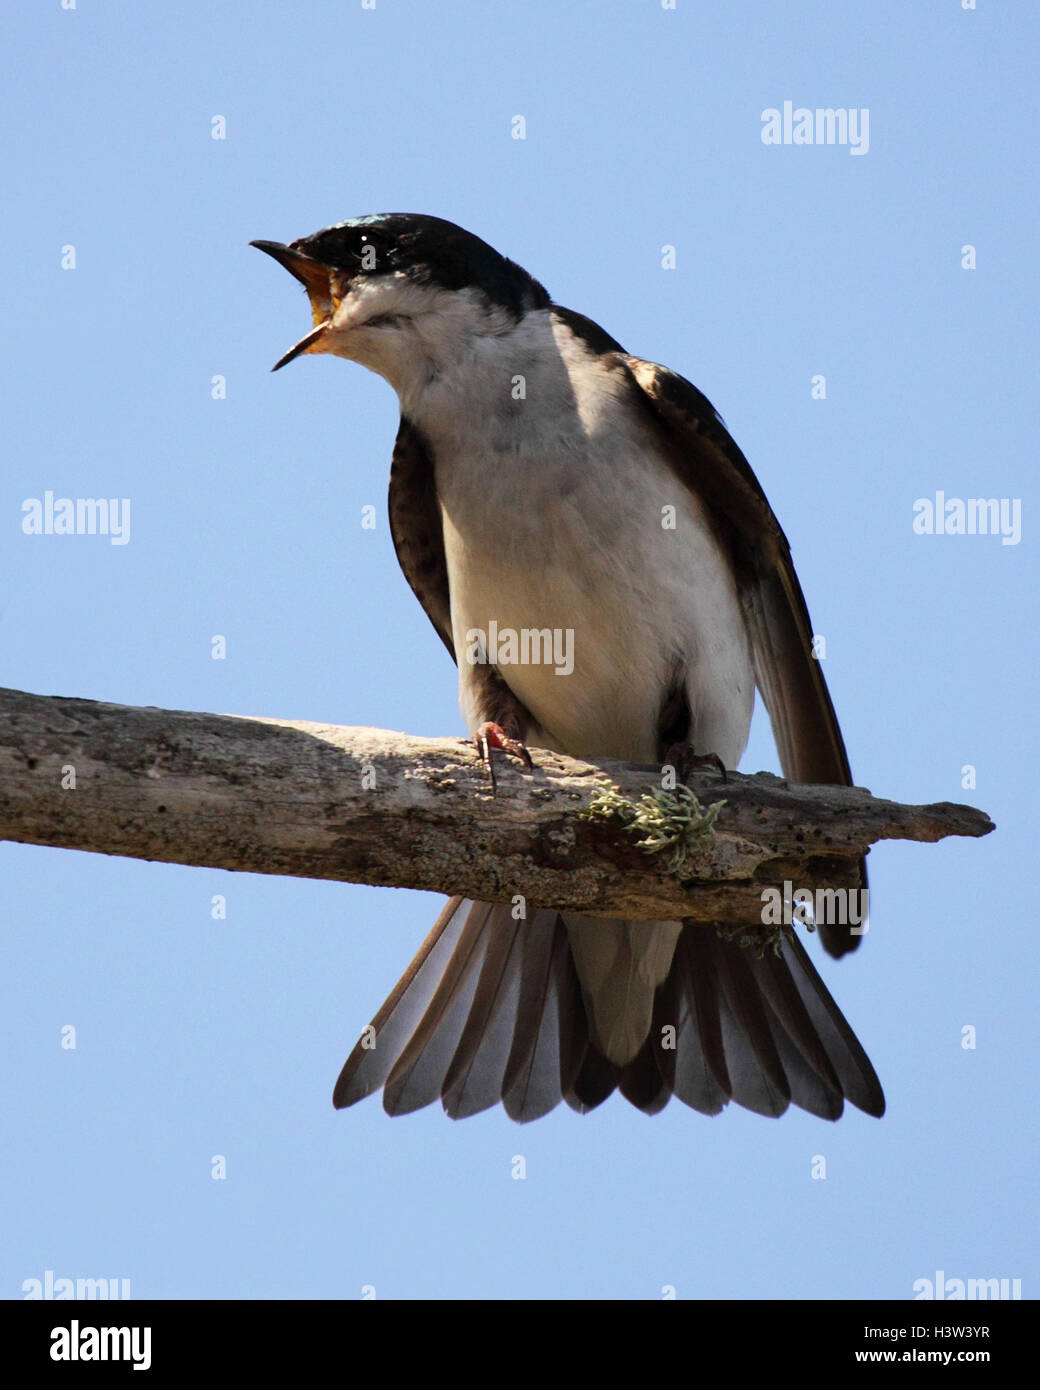 A Tree Swallow calling loudly. - Stock Image